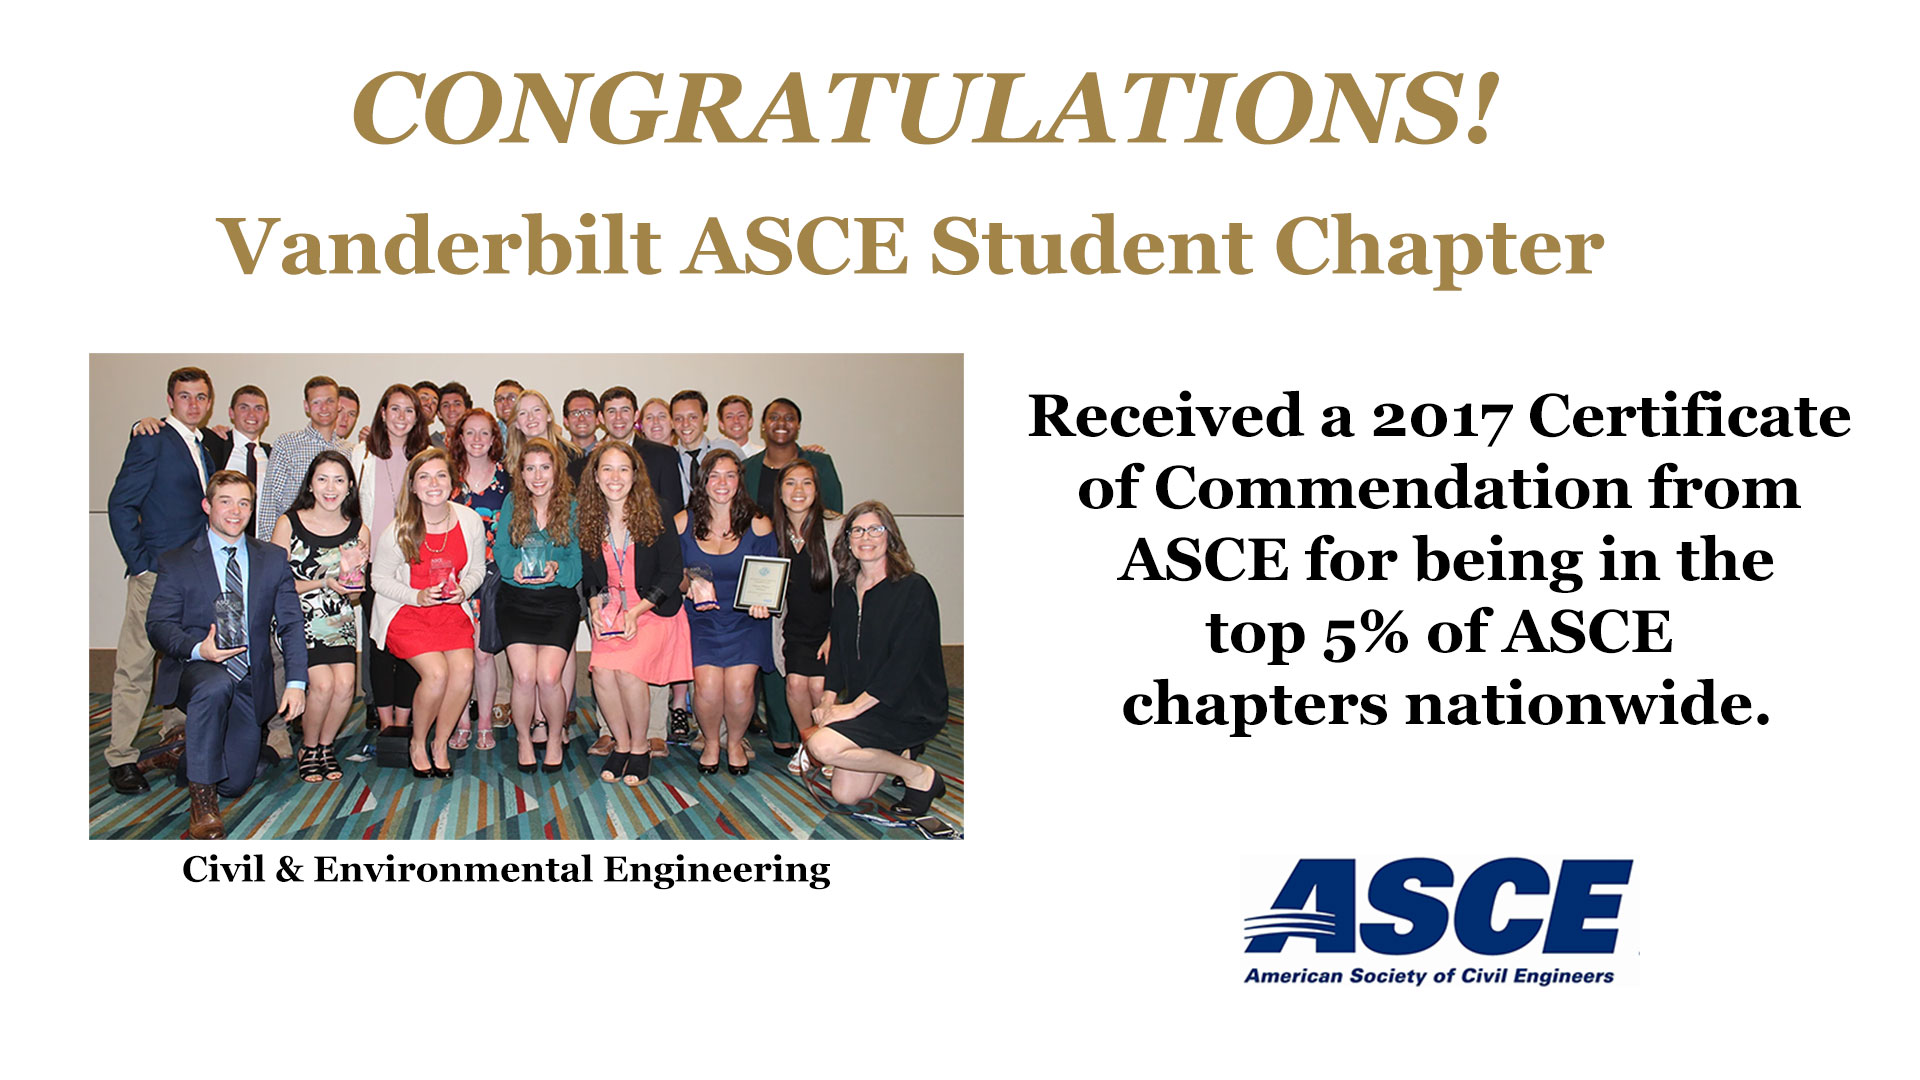 2017 Certificate of Commendation - ASCE